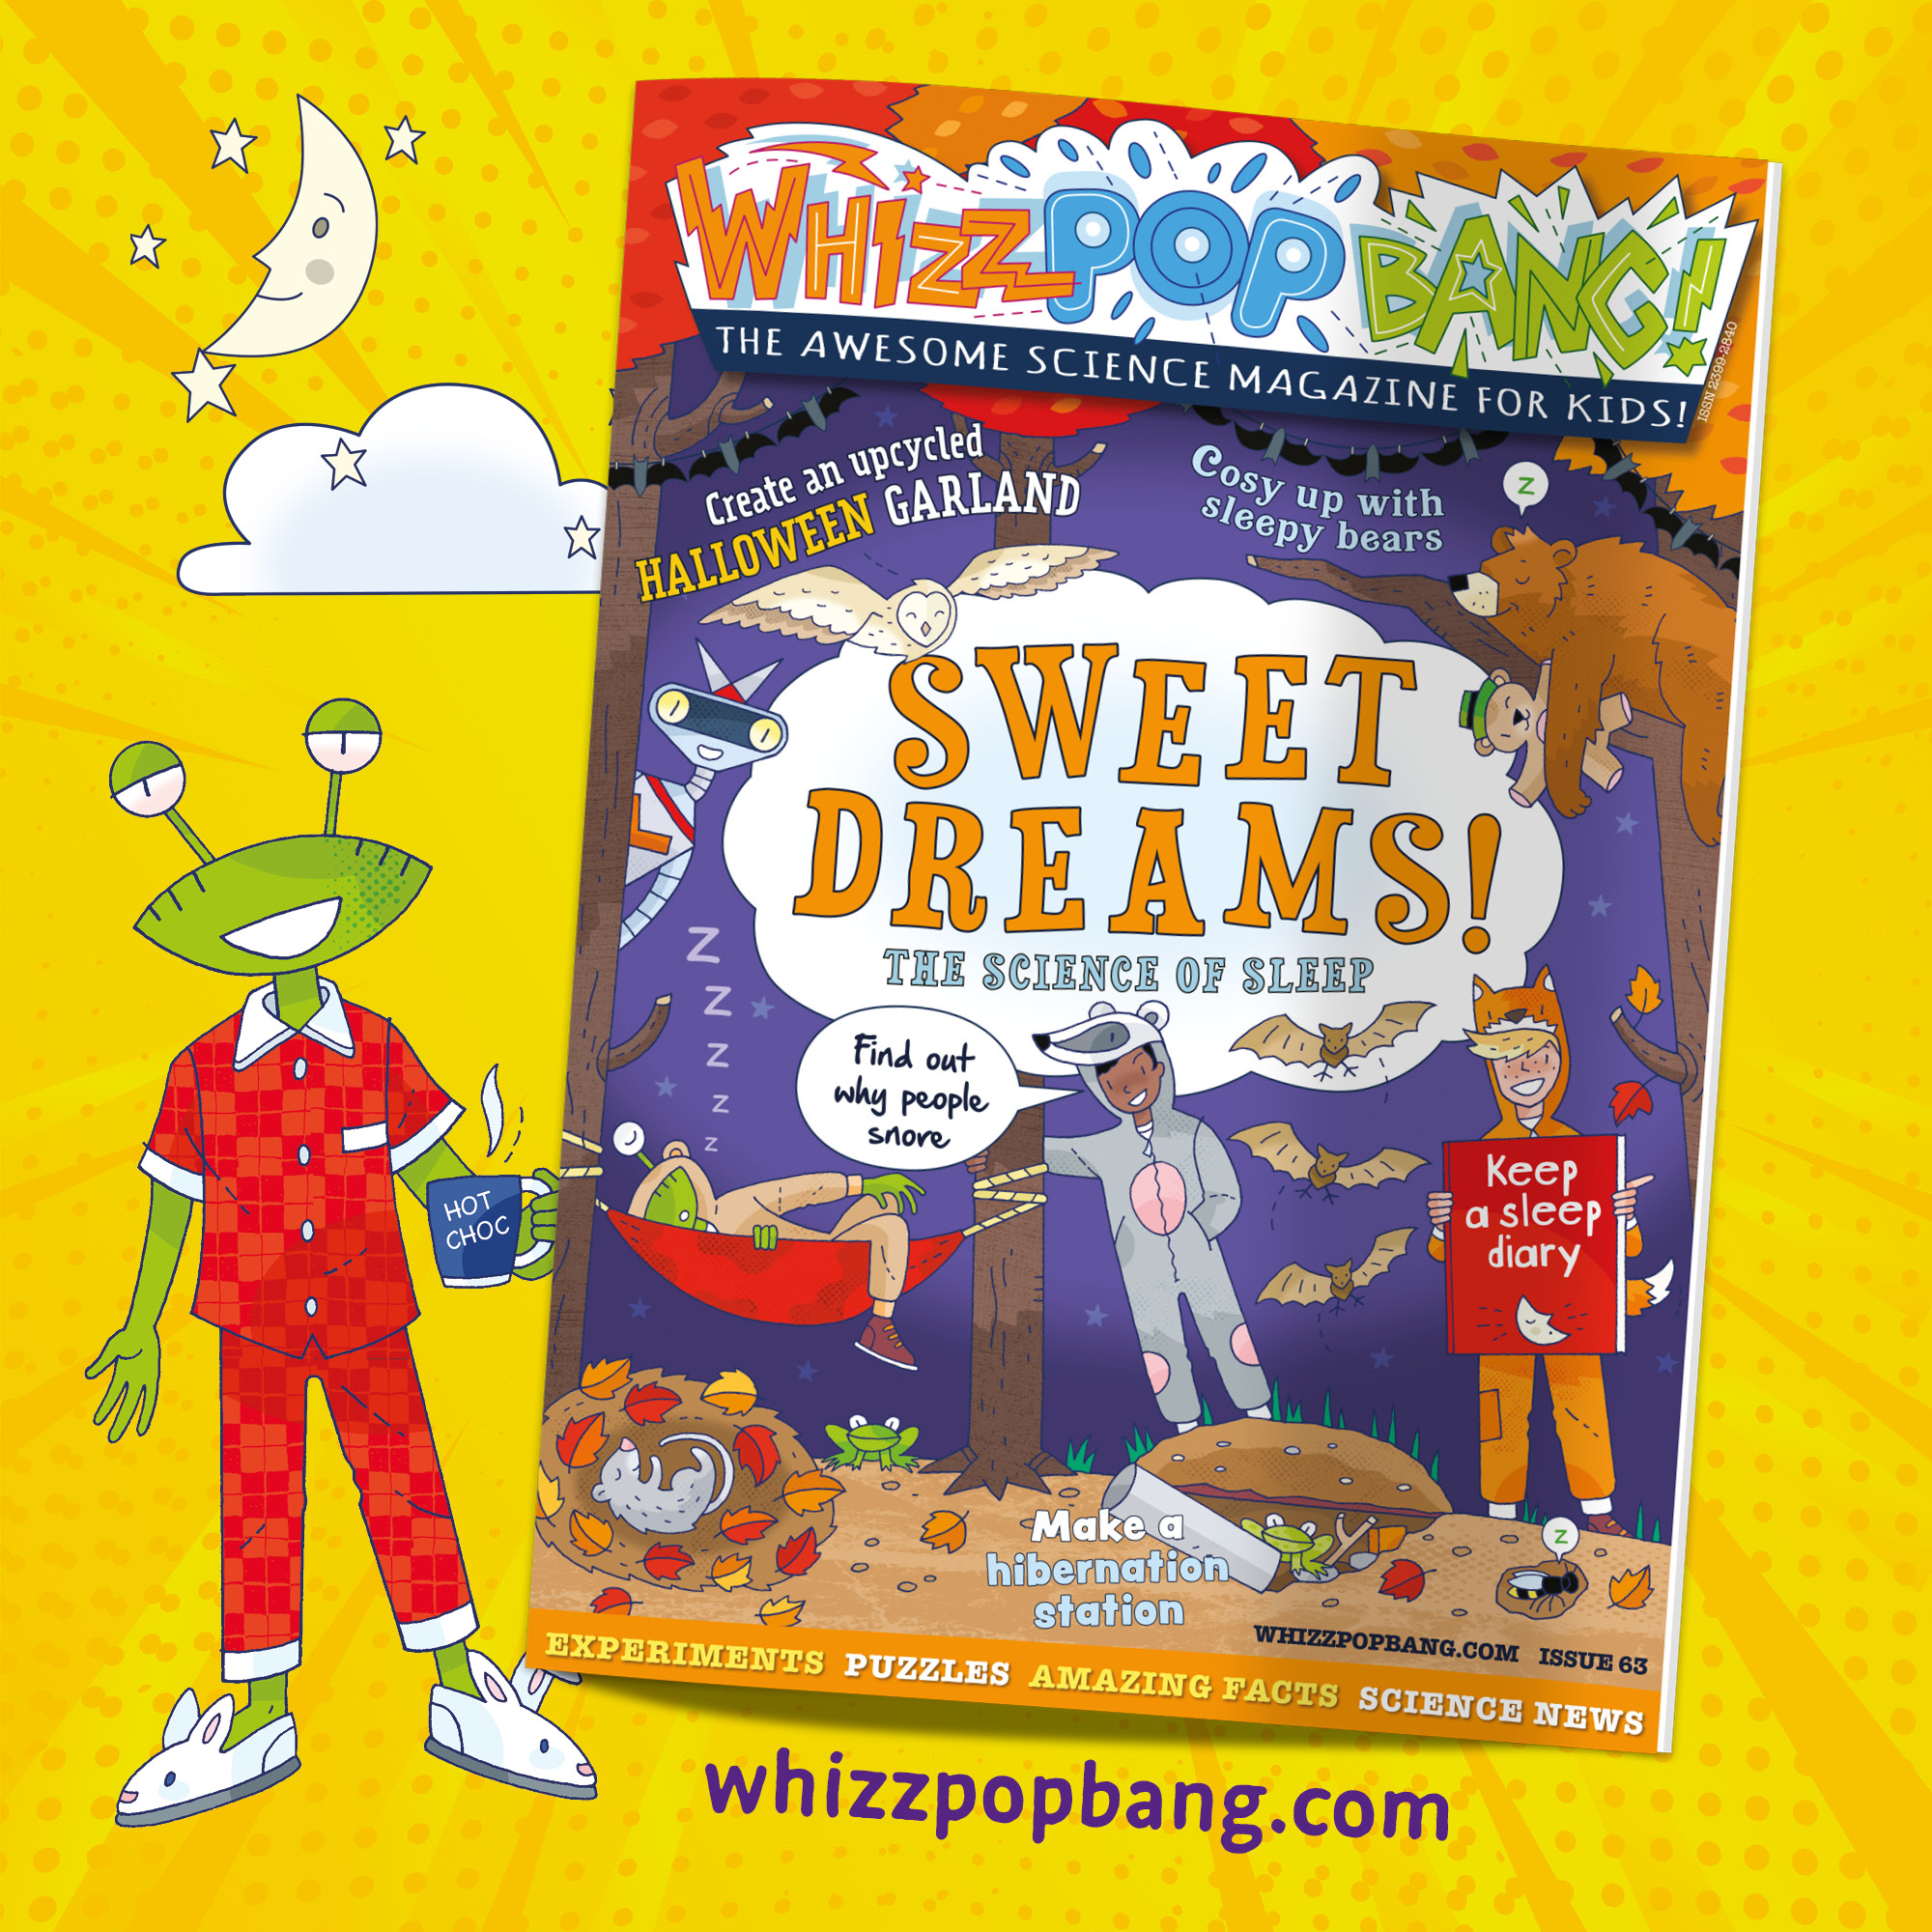 Whizz Pop Bang: Sweet Dreams issue is all about the science of sleep